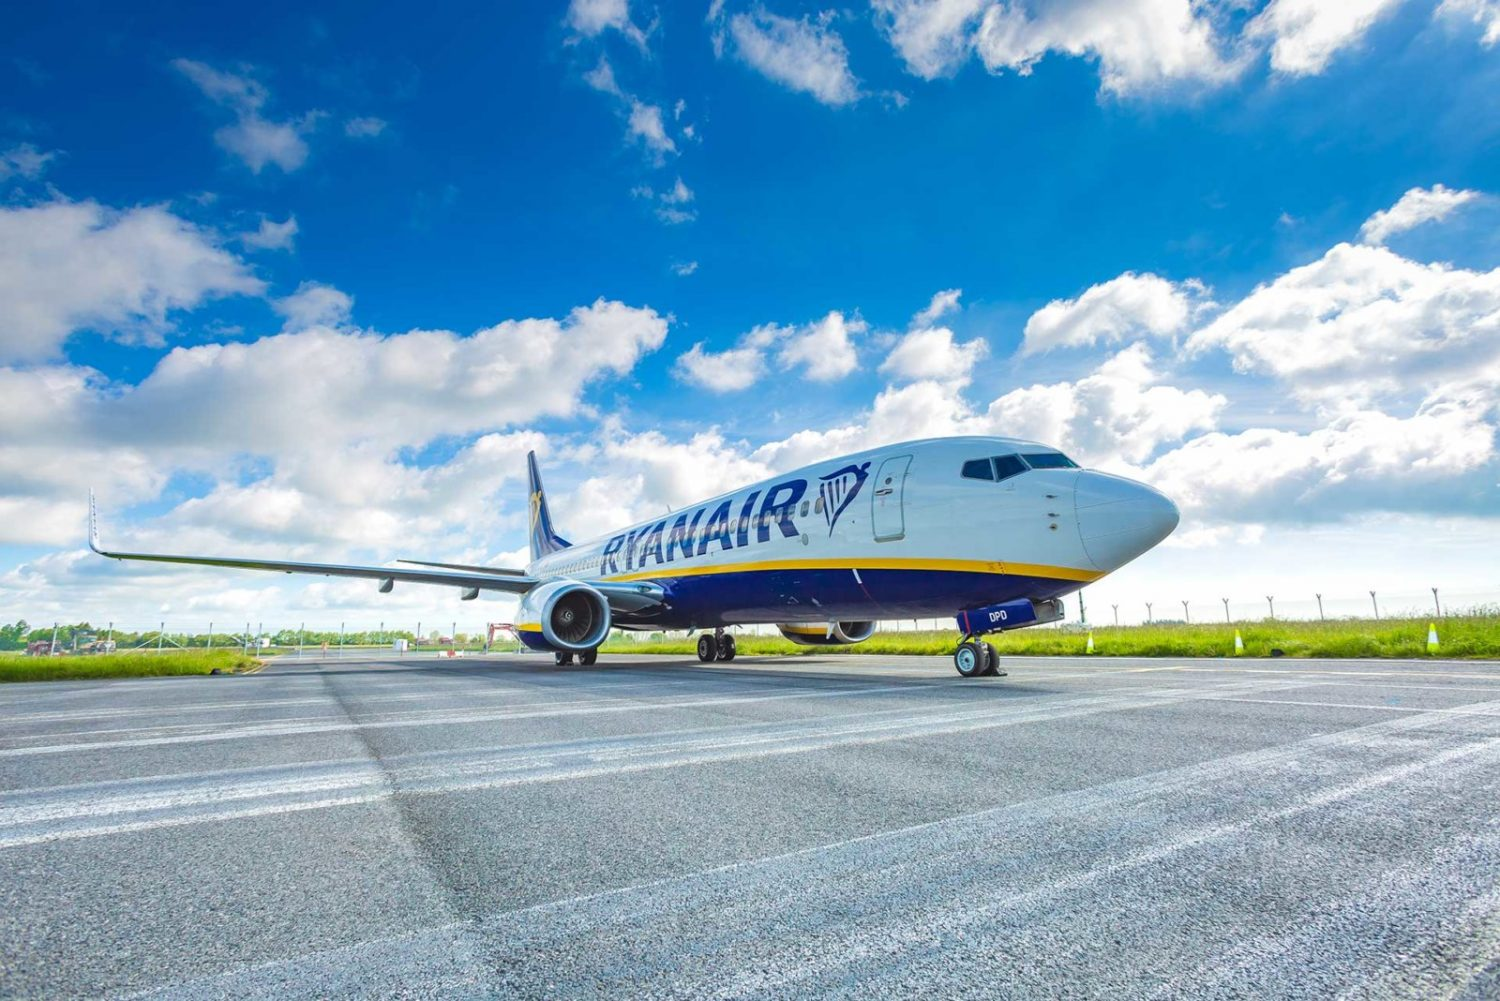 Ryanair is making way for many new pilots